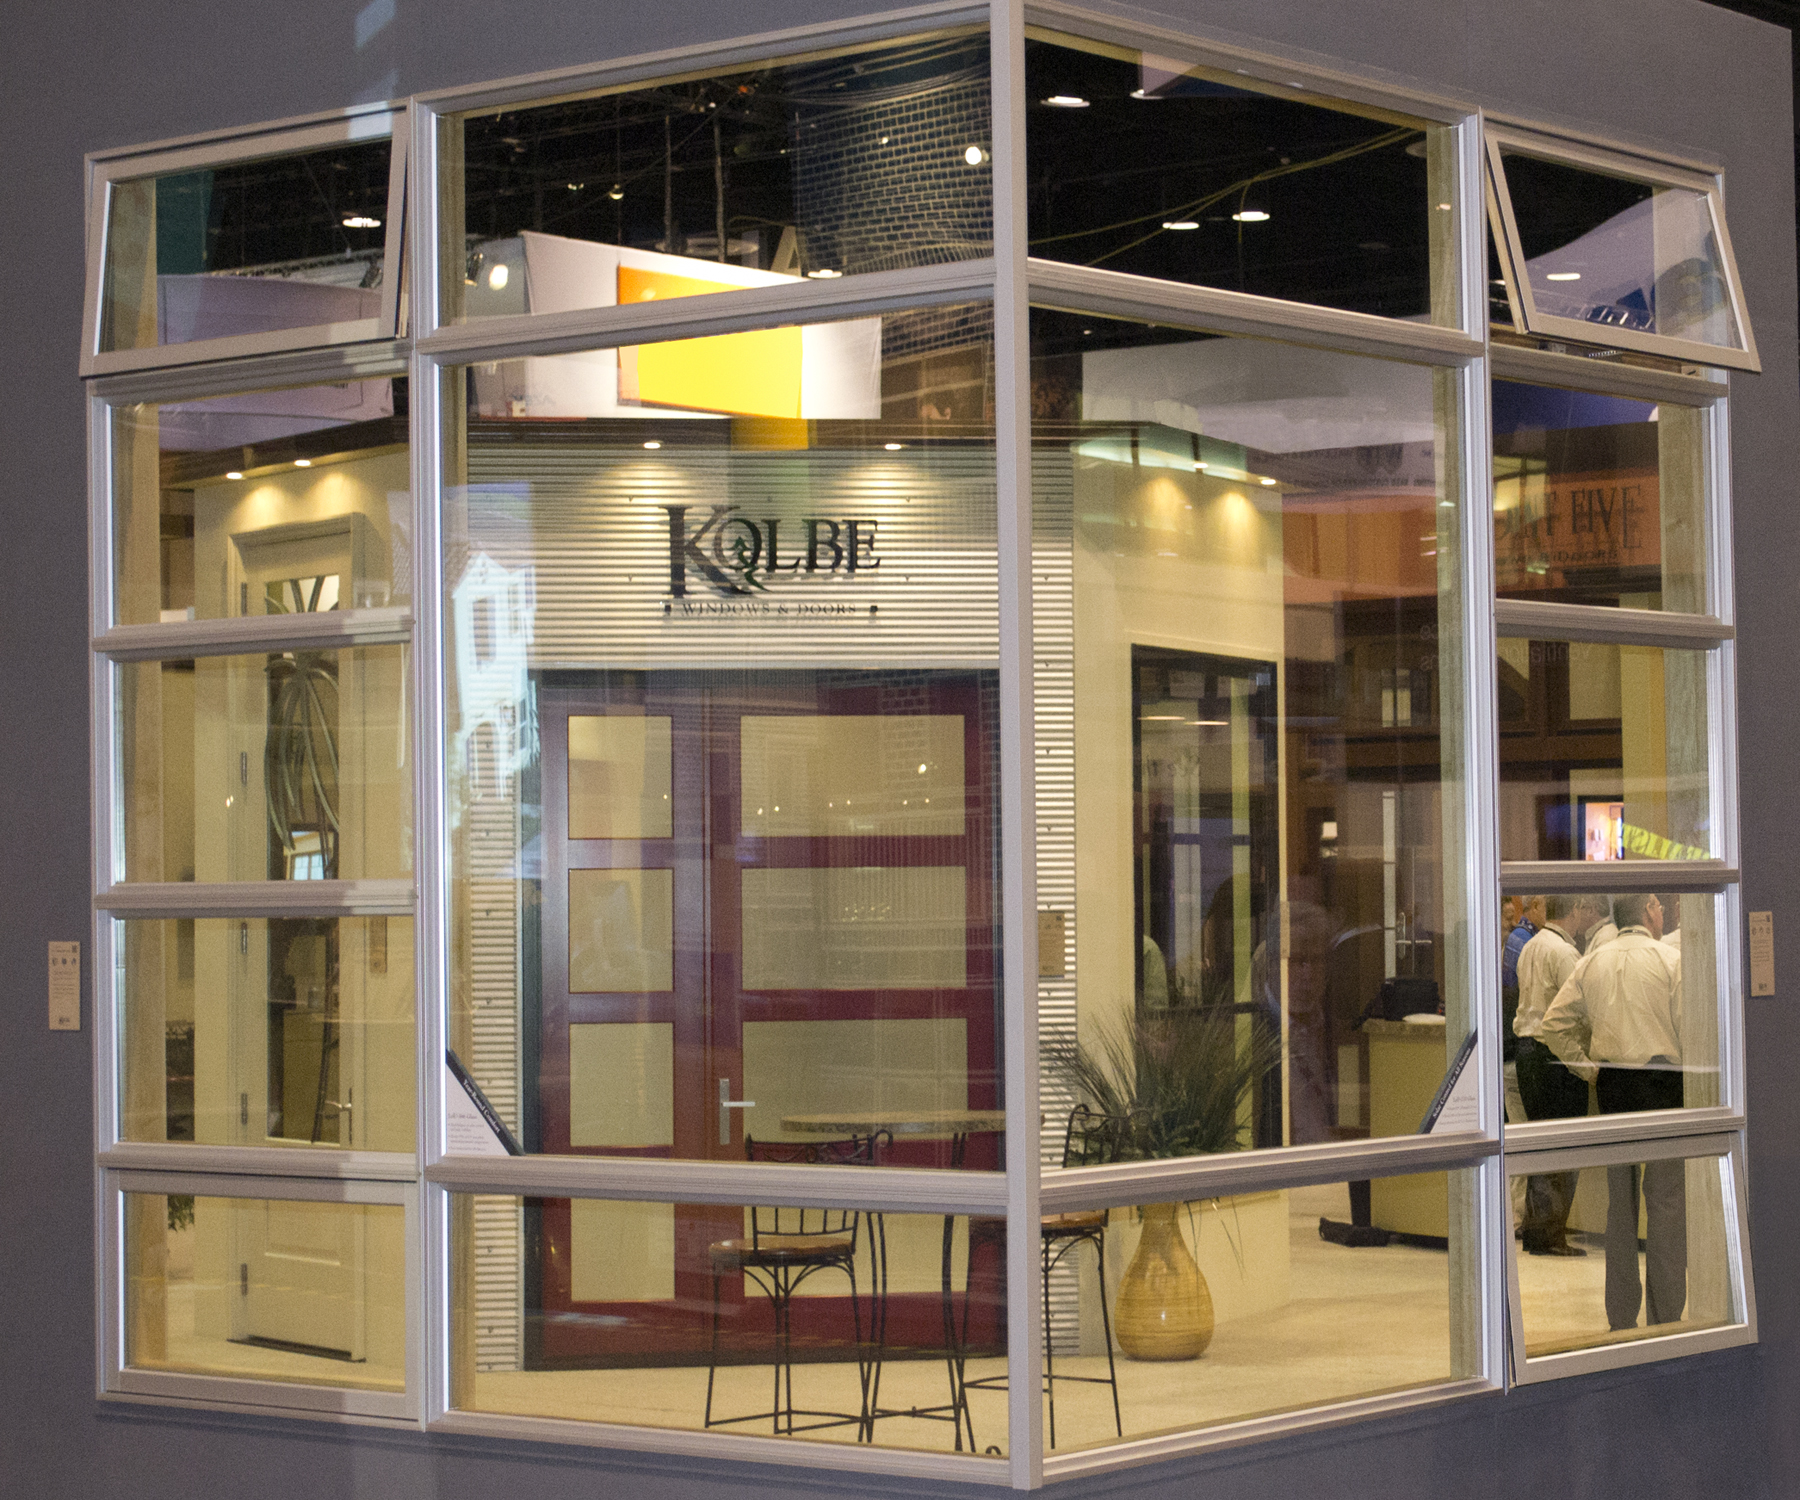 Heather West PR » Client news: Kolbe\'s AIA booth features ...